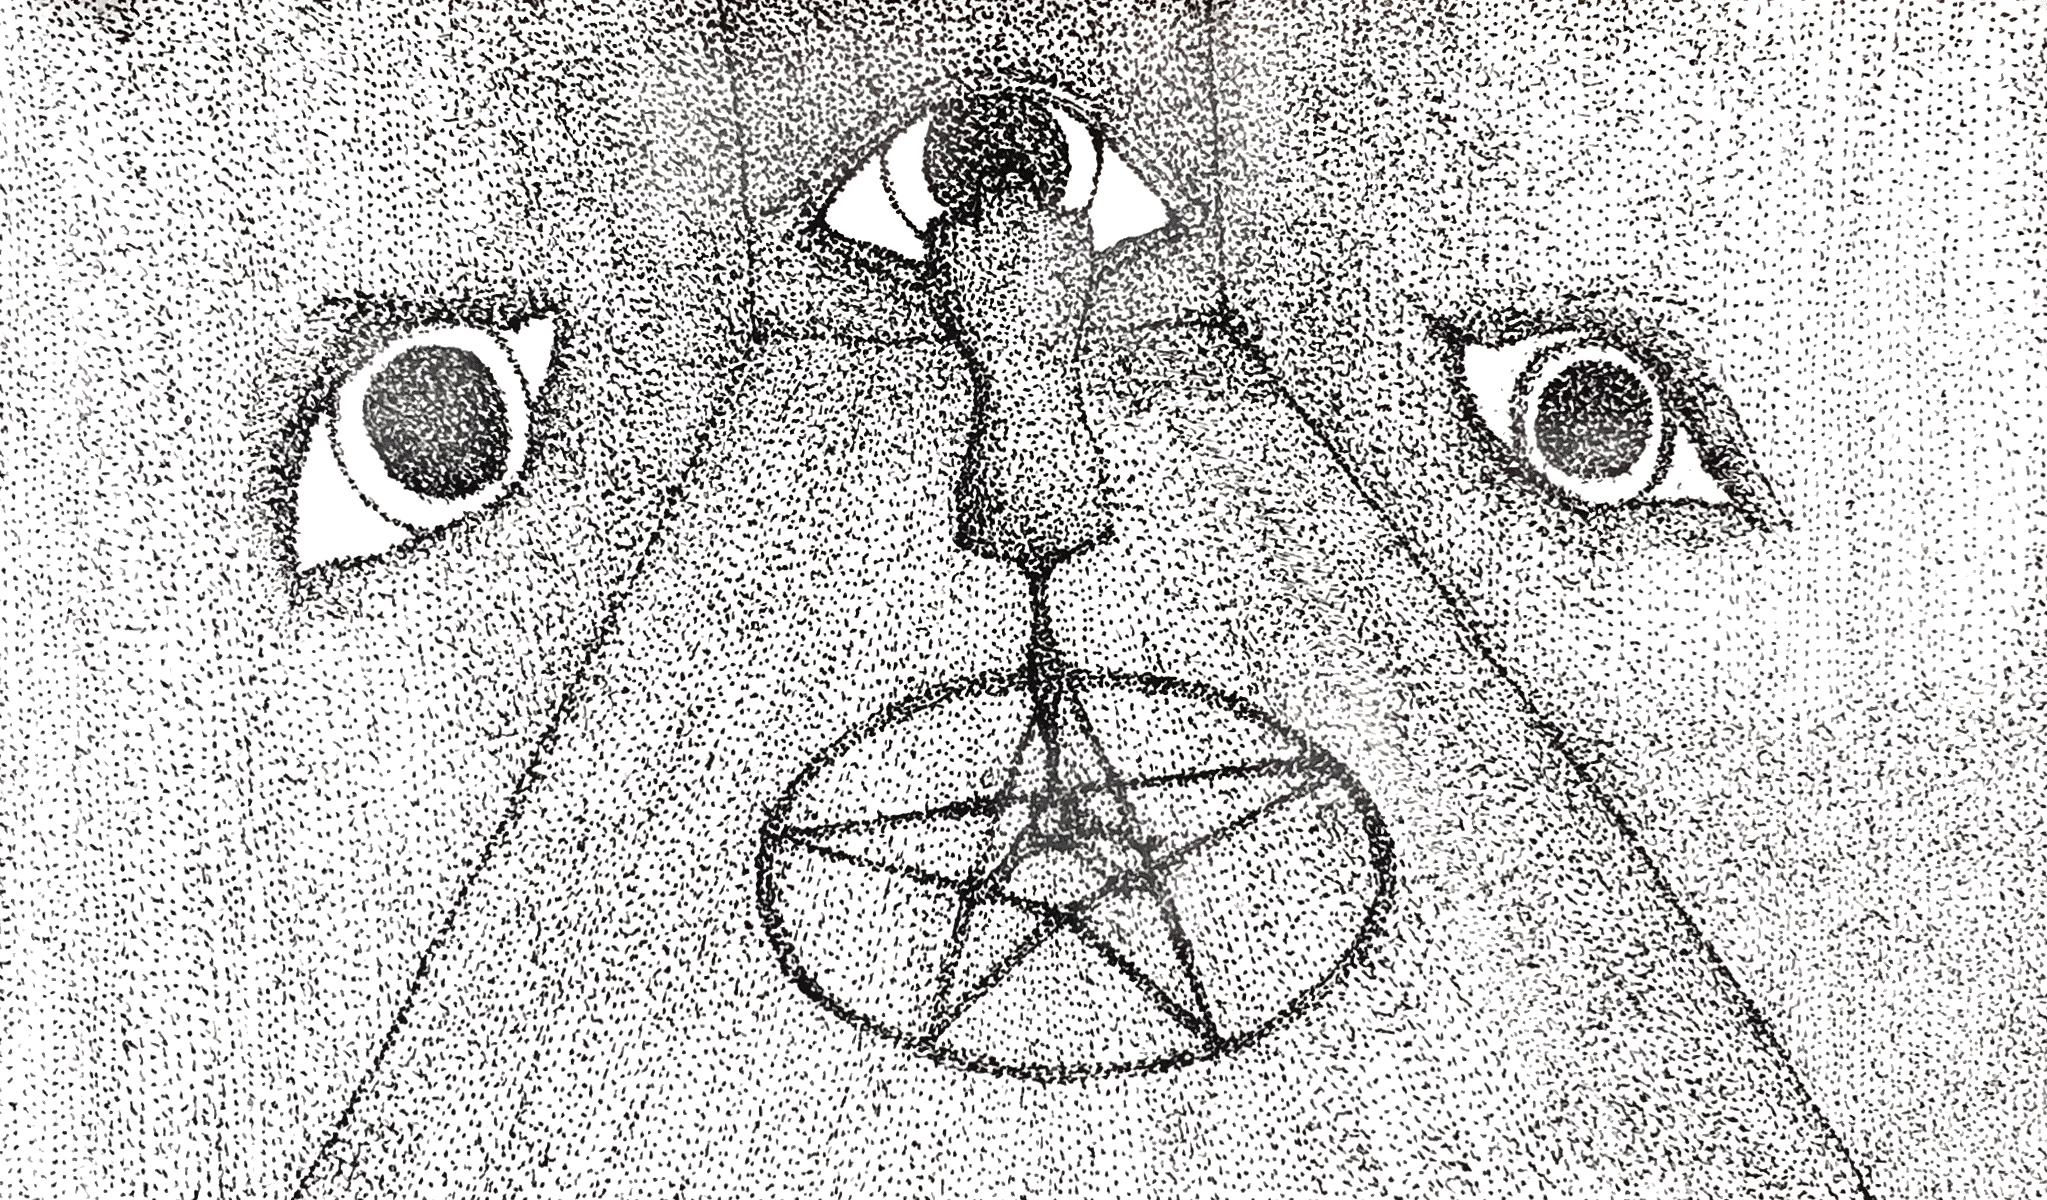 a sketch of a small room with three walls, there are eyes on each wall facing the middle of the room. in the centre there is a person standing in the middle of a pentagram